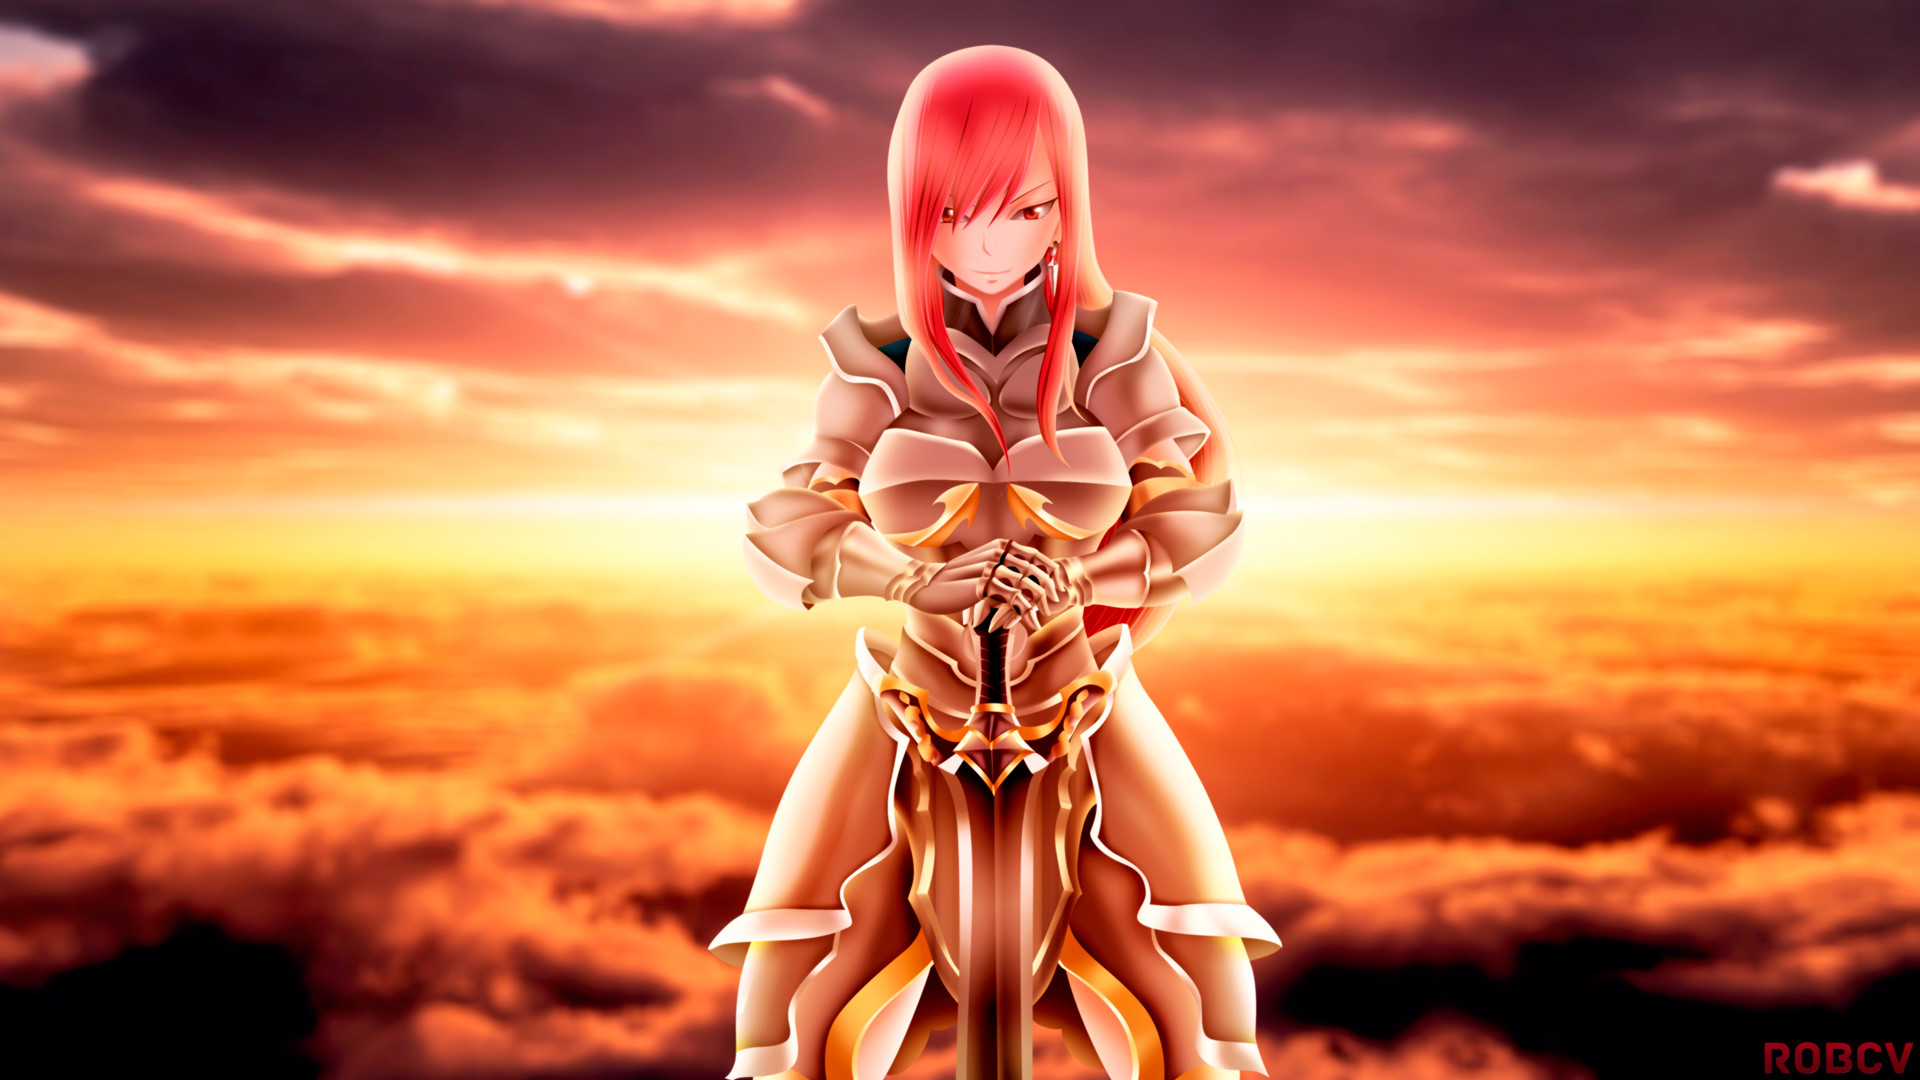 1920x1080 erza scarlet armor and sword fairy tail anime girl